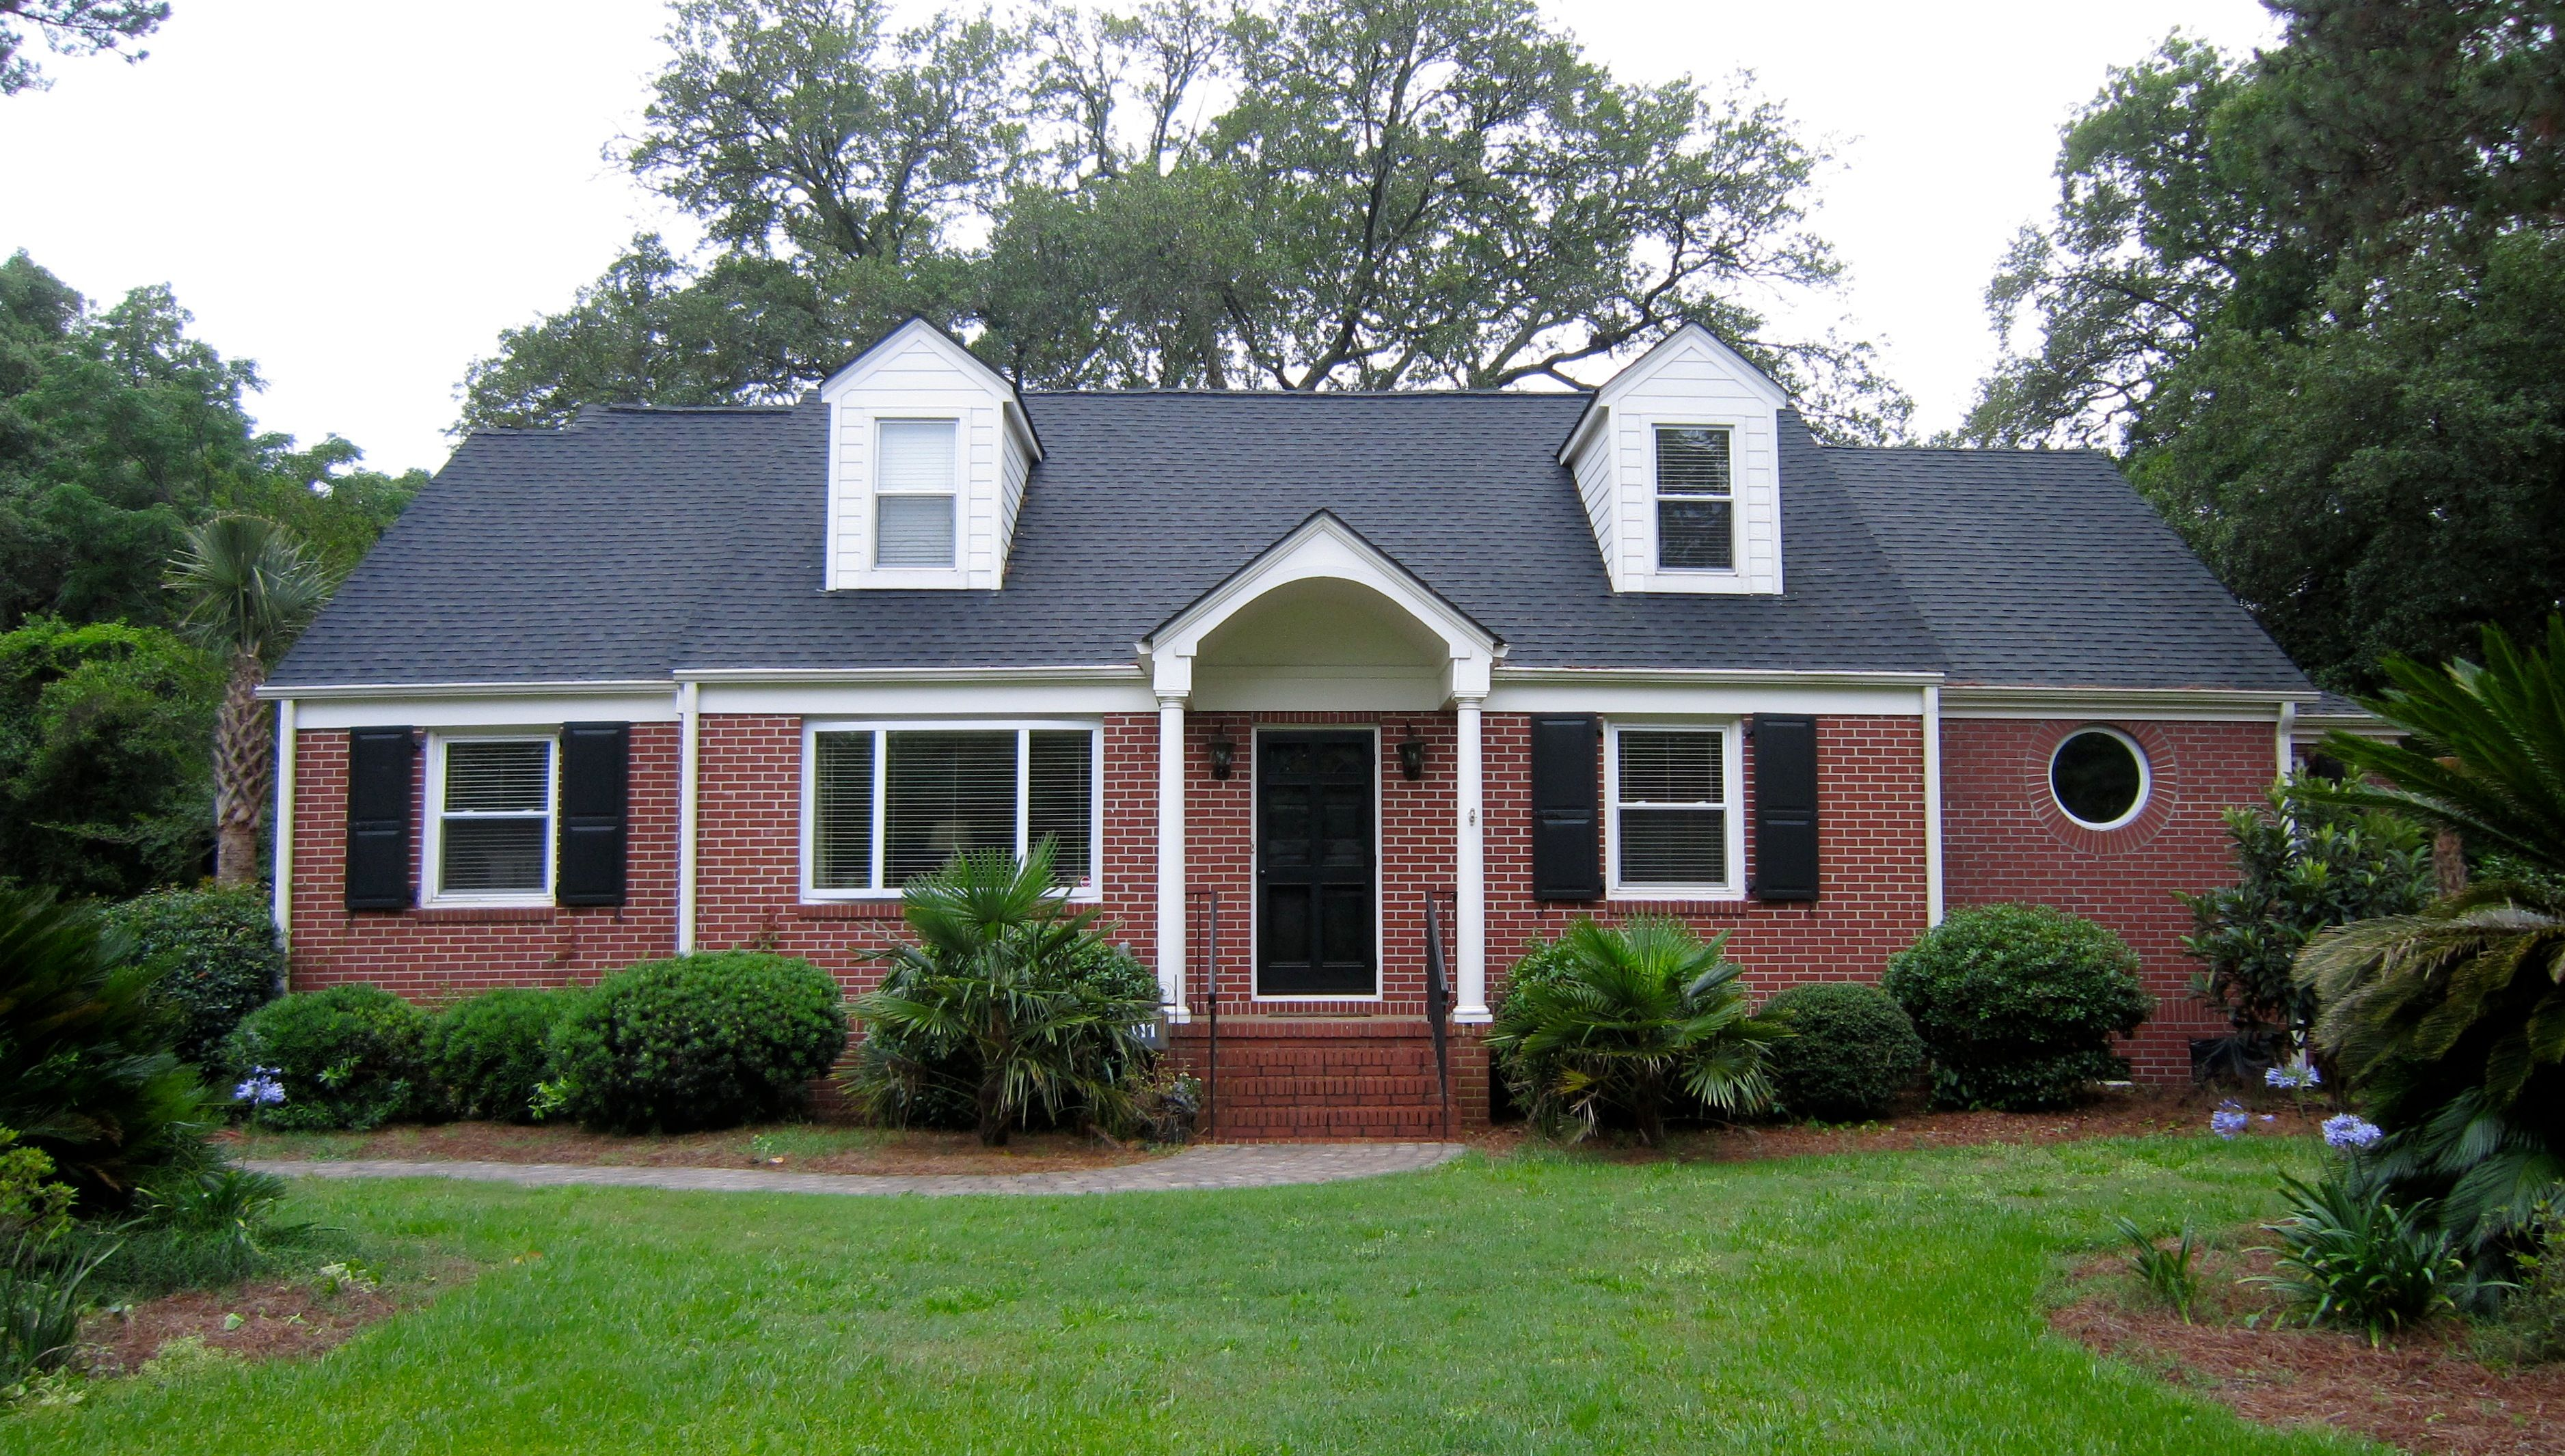 Exterior house color schemes with black shutters - Exterior Paint Color With Red Brick To Paint Or White Wash